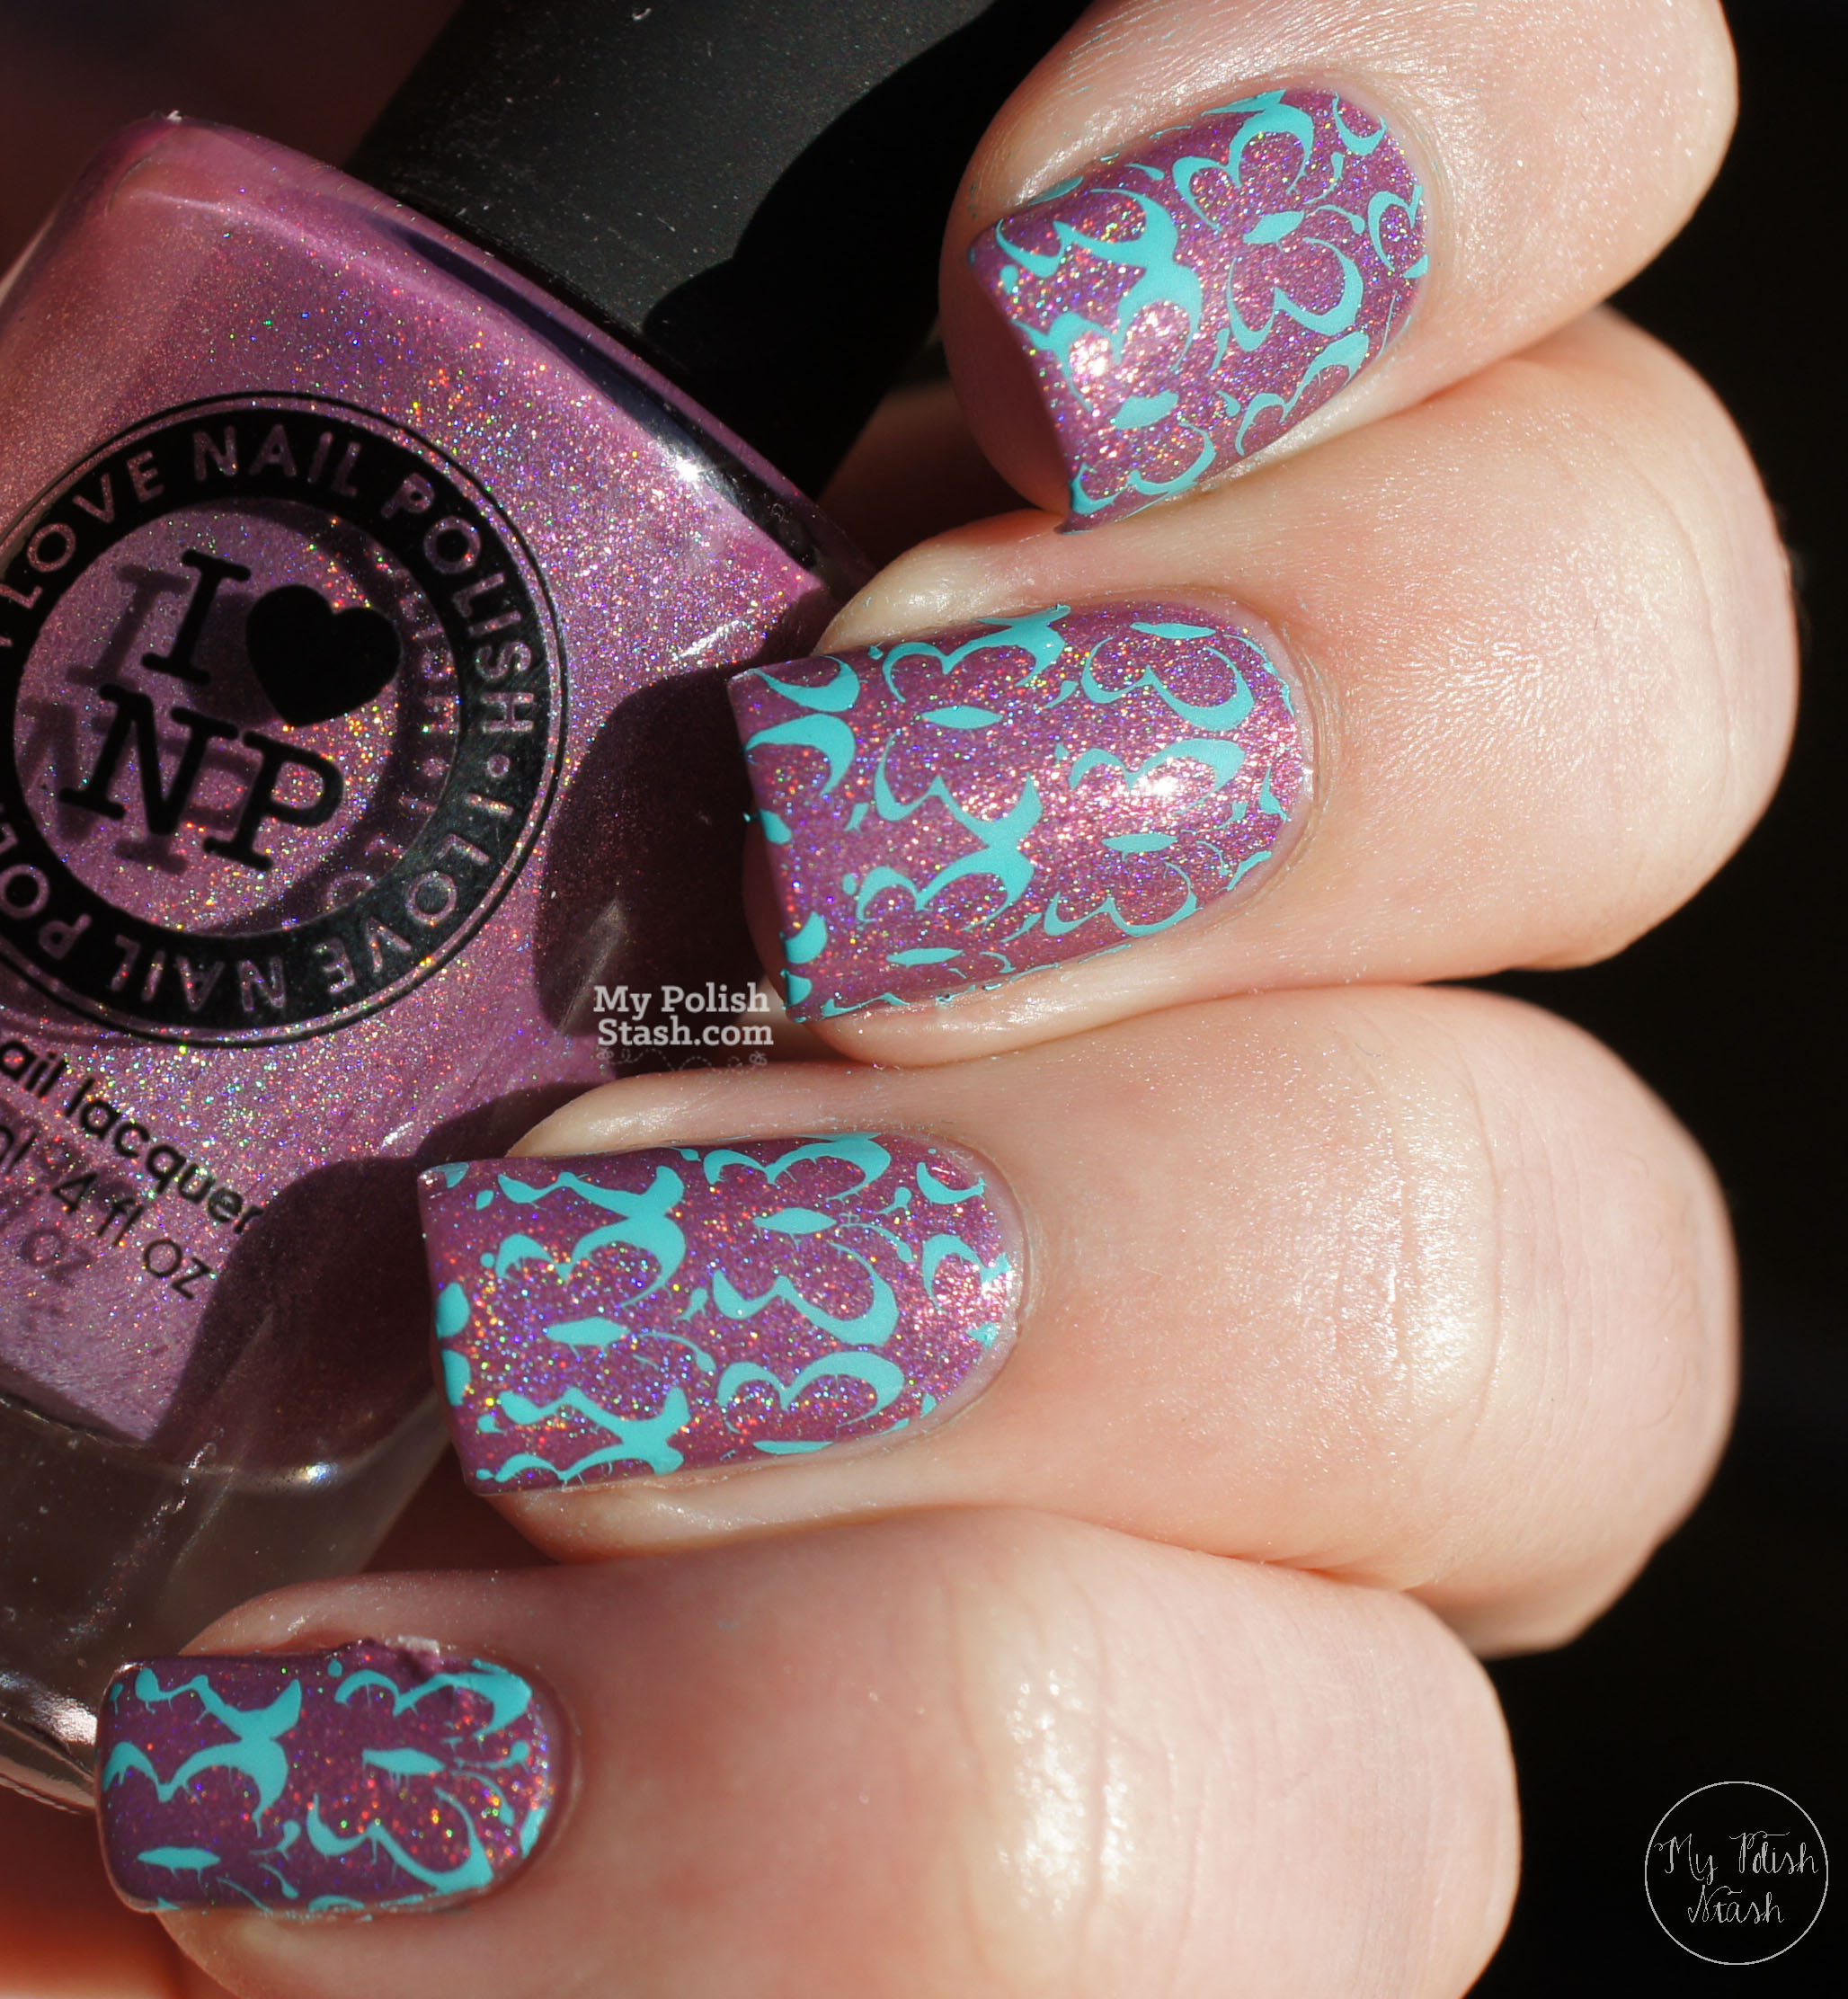 ILNP-dreaming-in-violet-spring-stamping-2